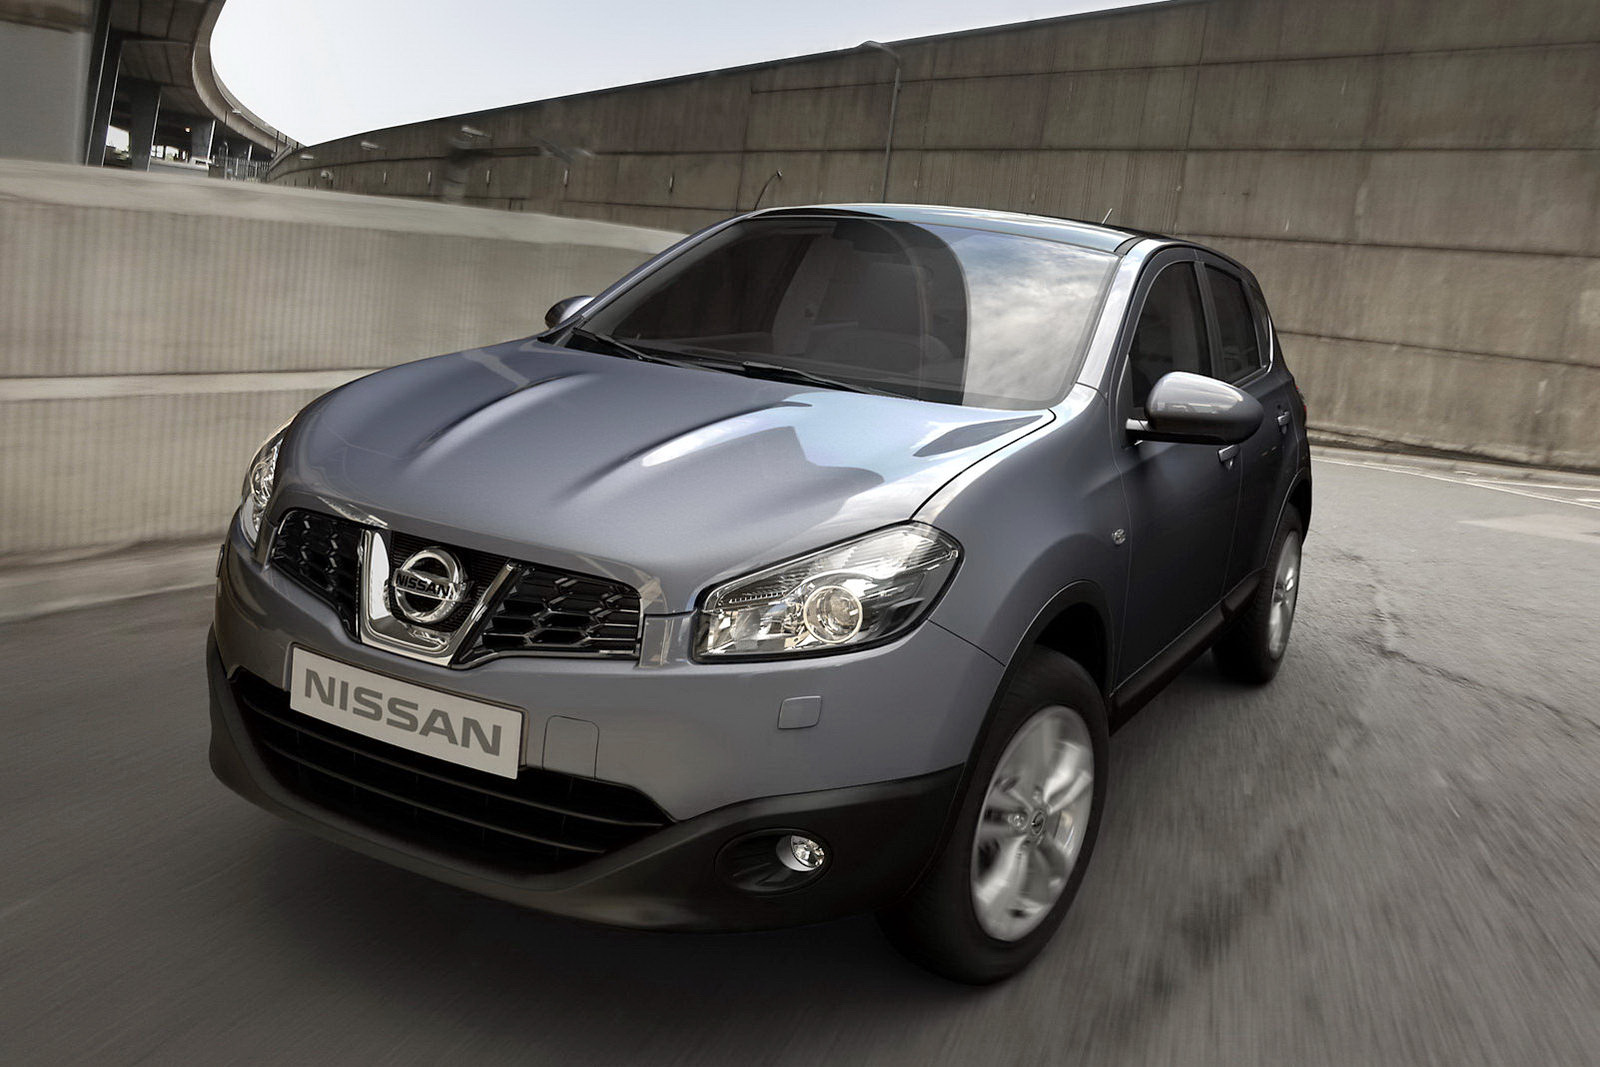 2010 nissan qashqai 2 pictures information and specs auto. Black Bedroom Furniture Sets. Home Design Ideas